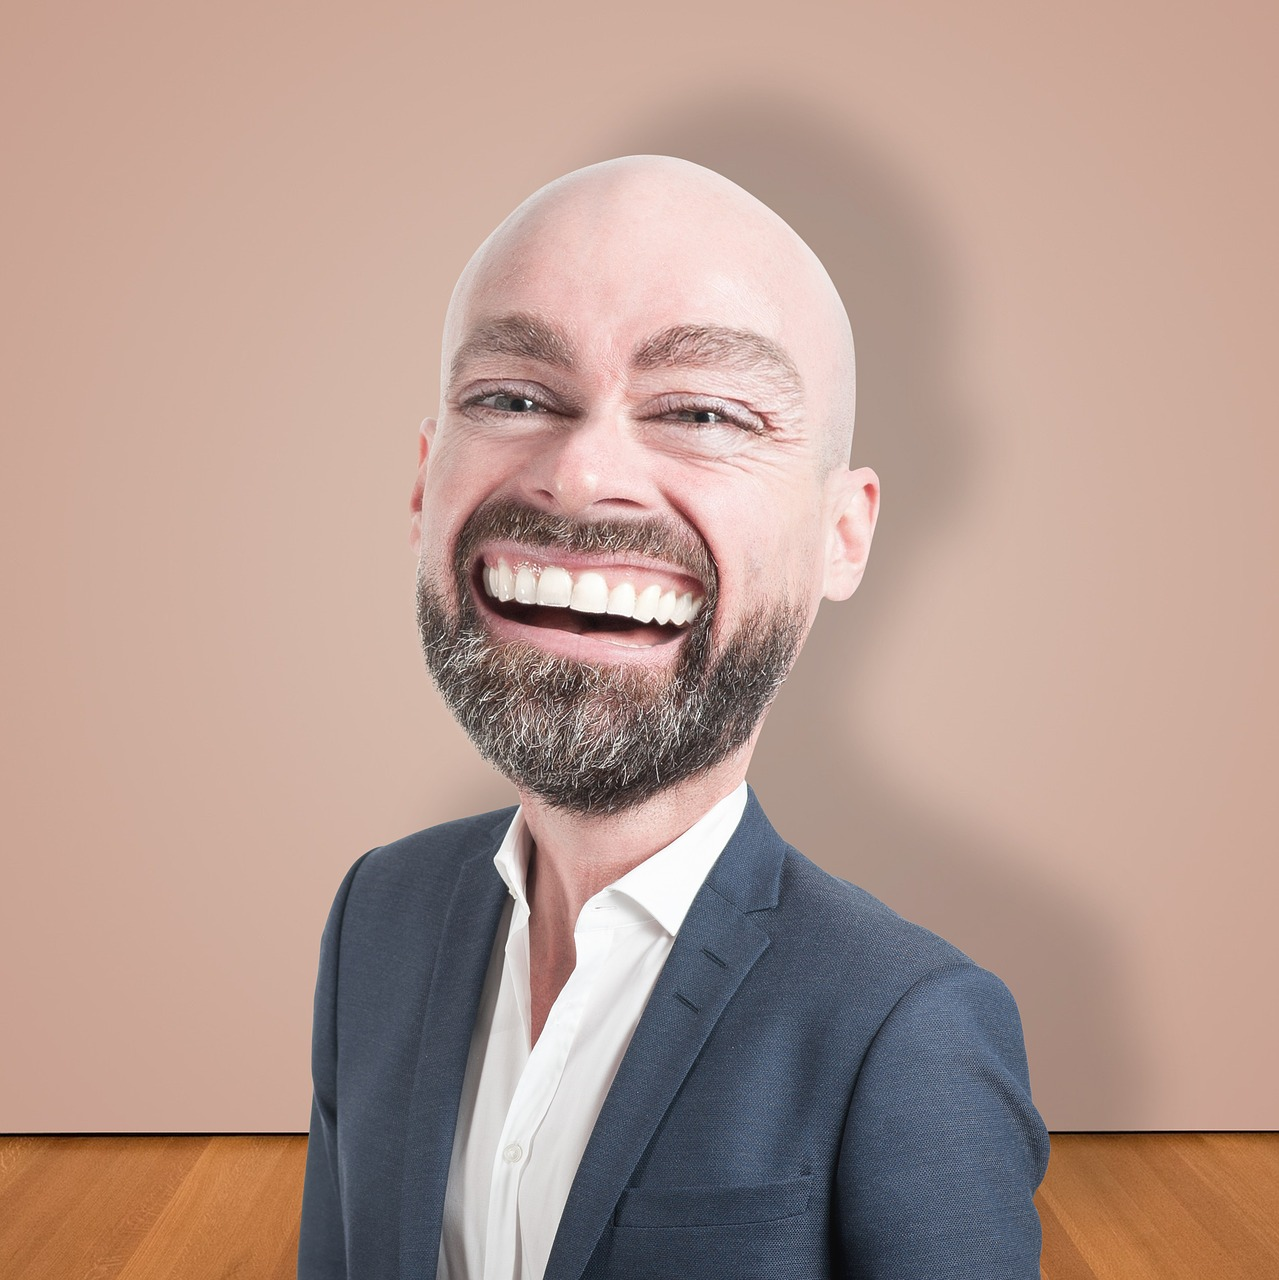 caricature businessman character free photo